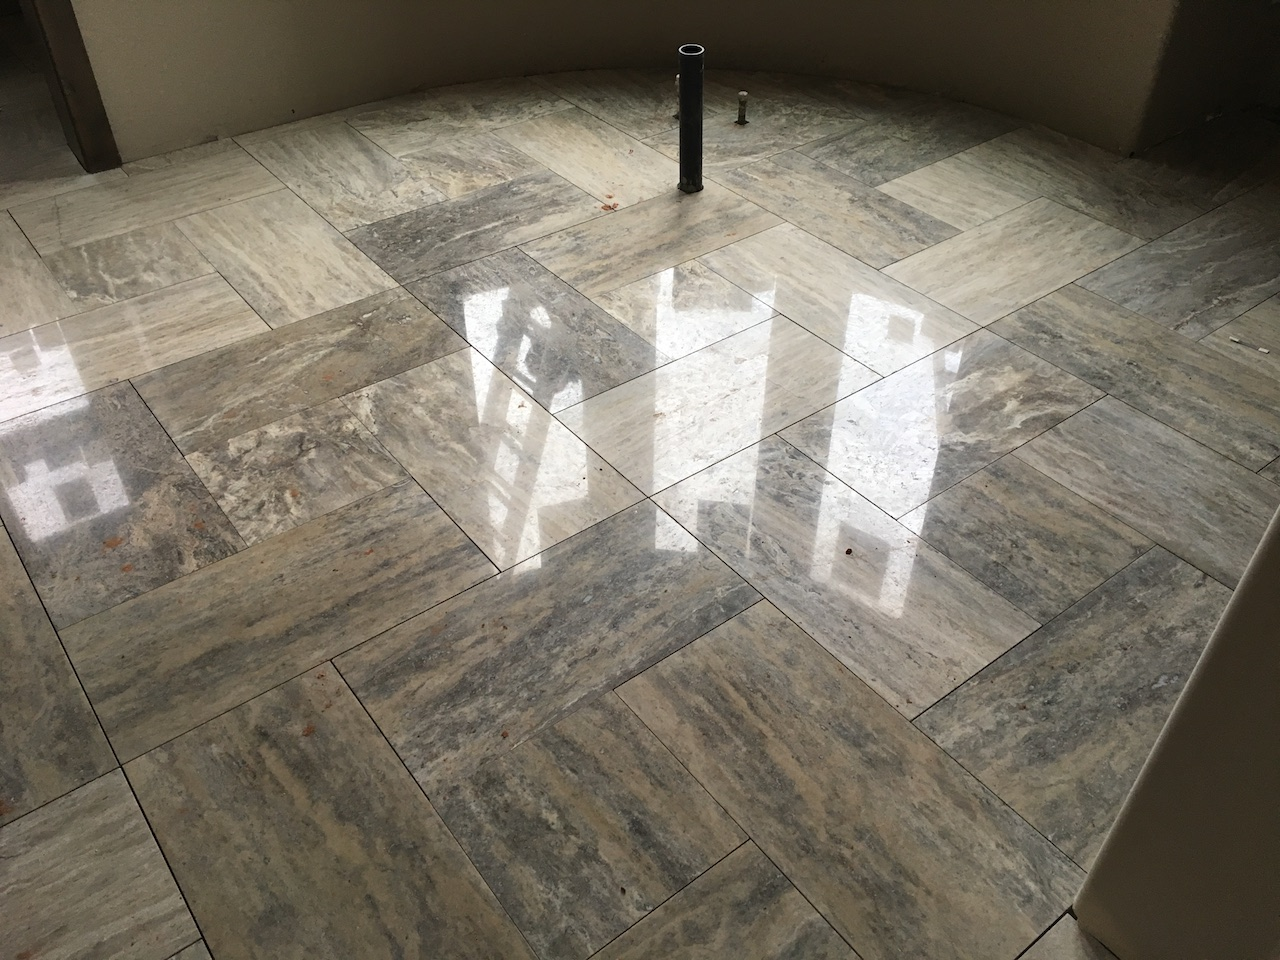 Polished vein cut travertine as installed in this before picture